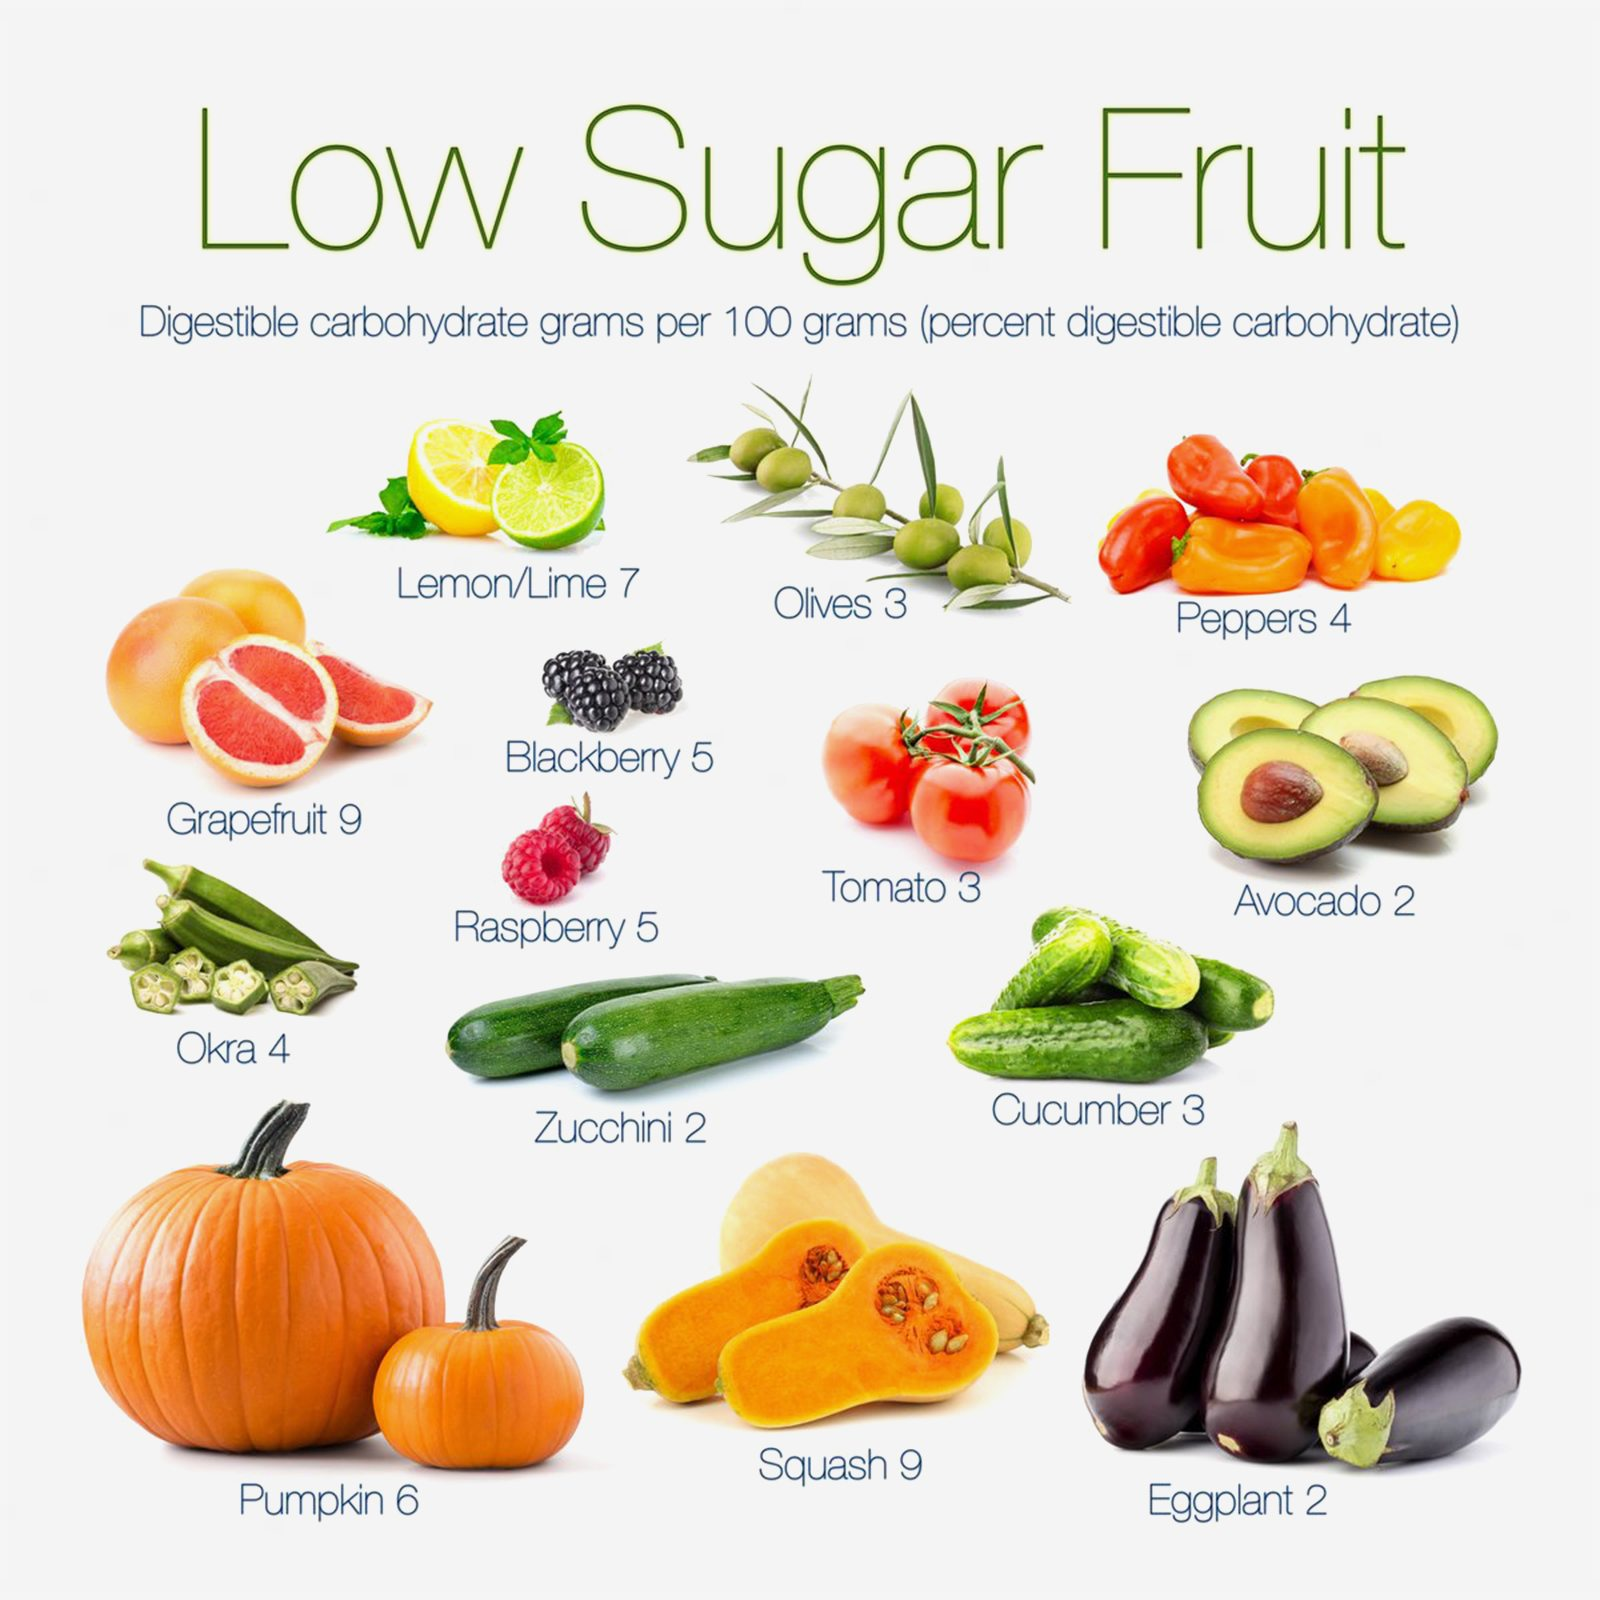 What Fruits Can You Eat On A Low Carbt